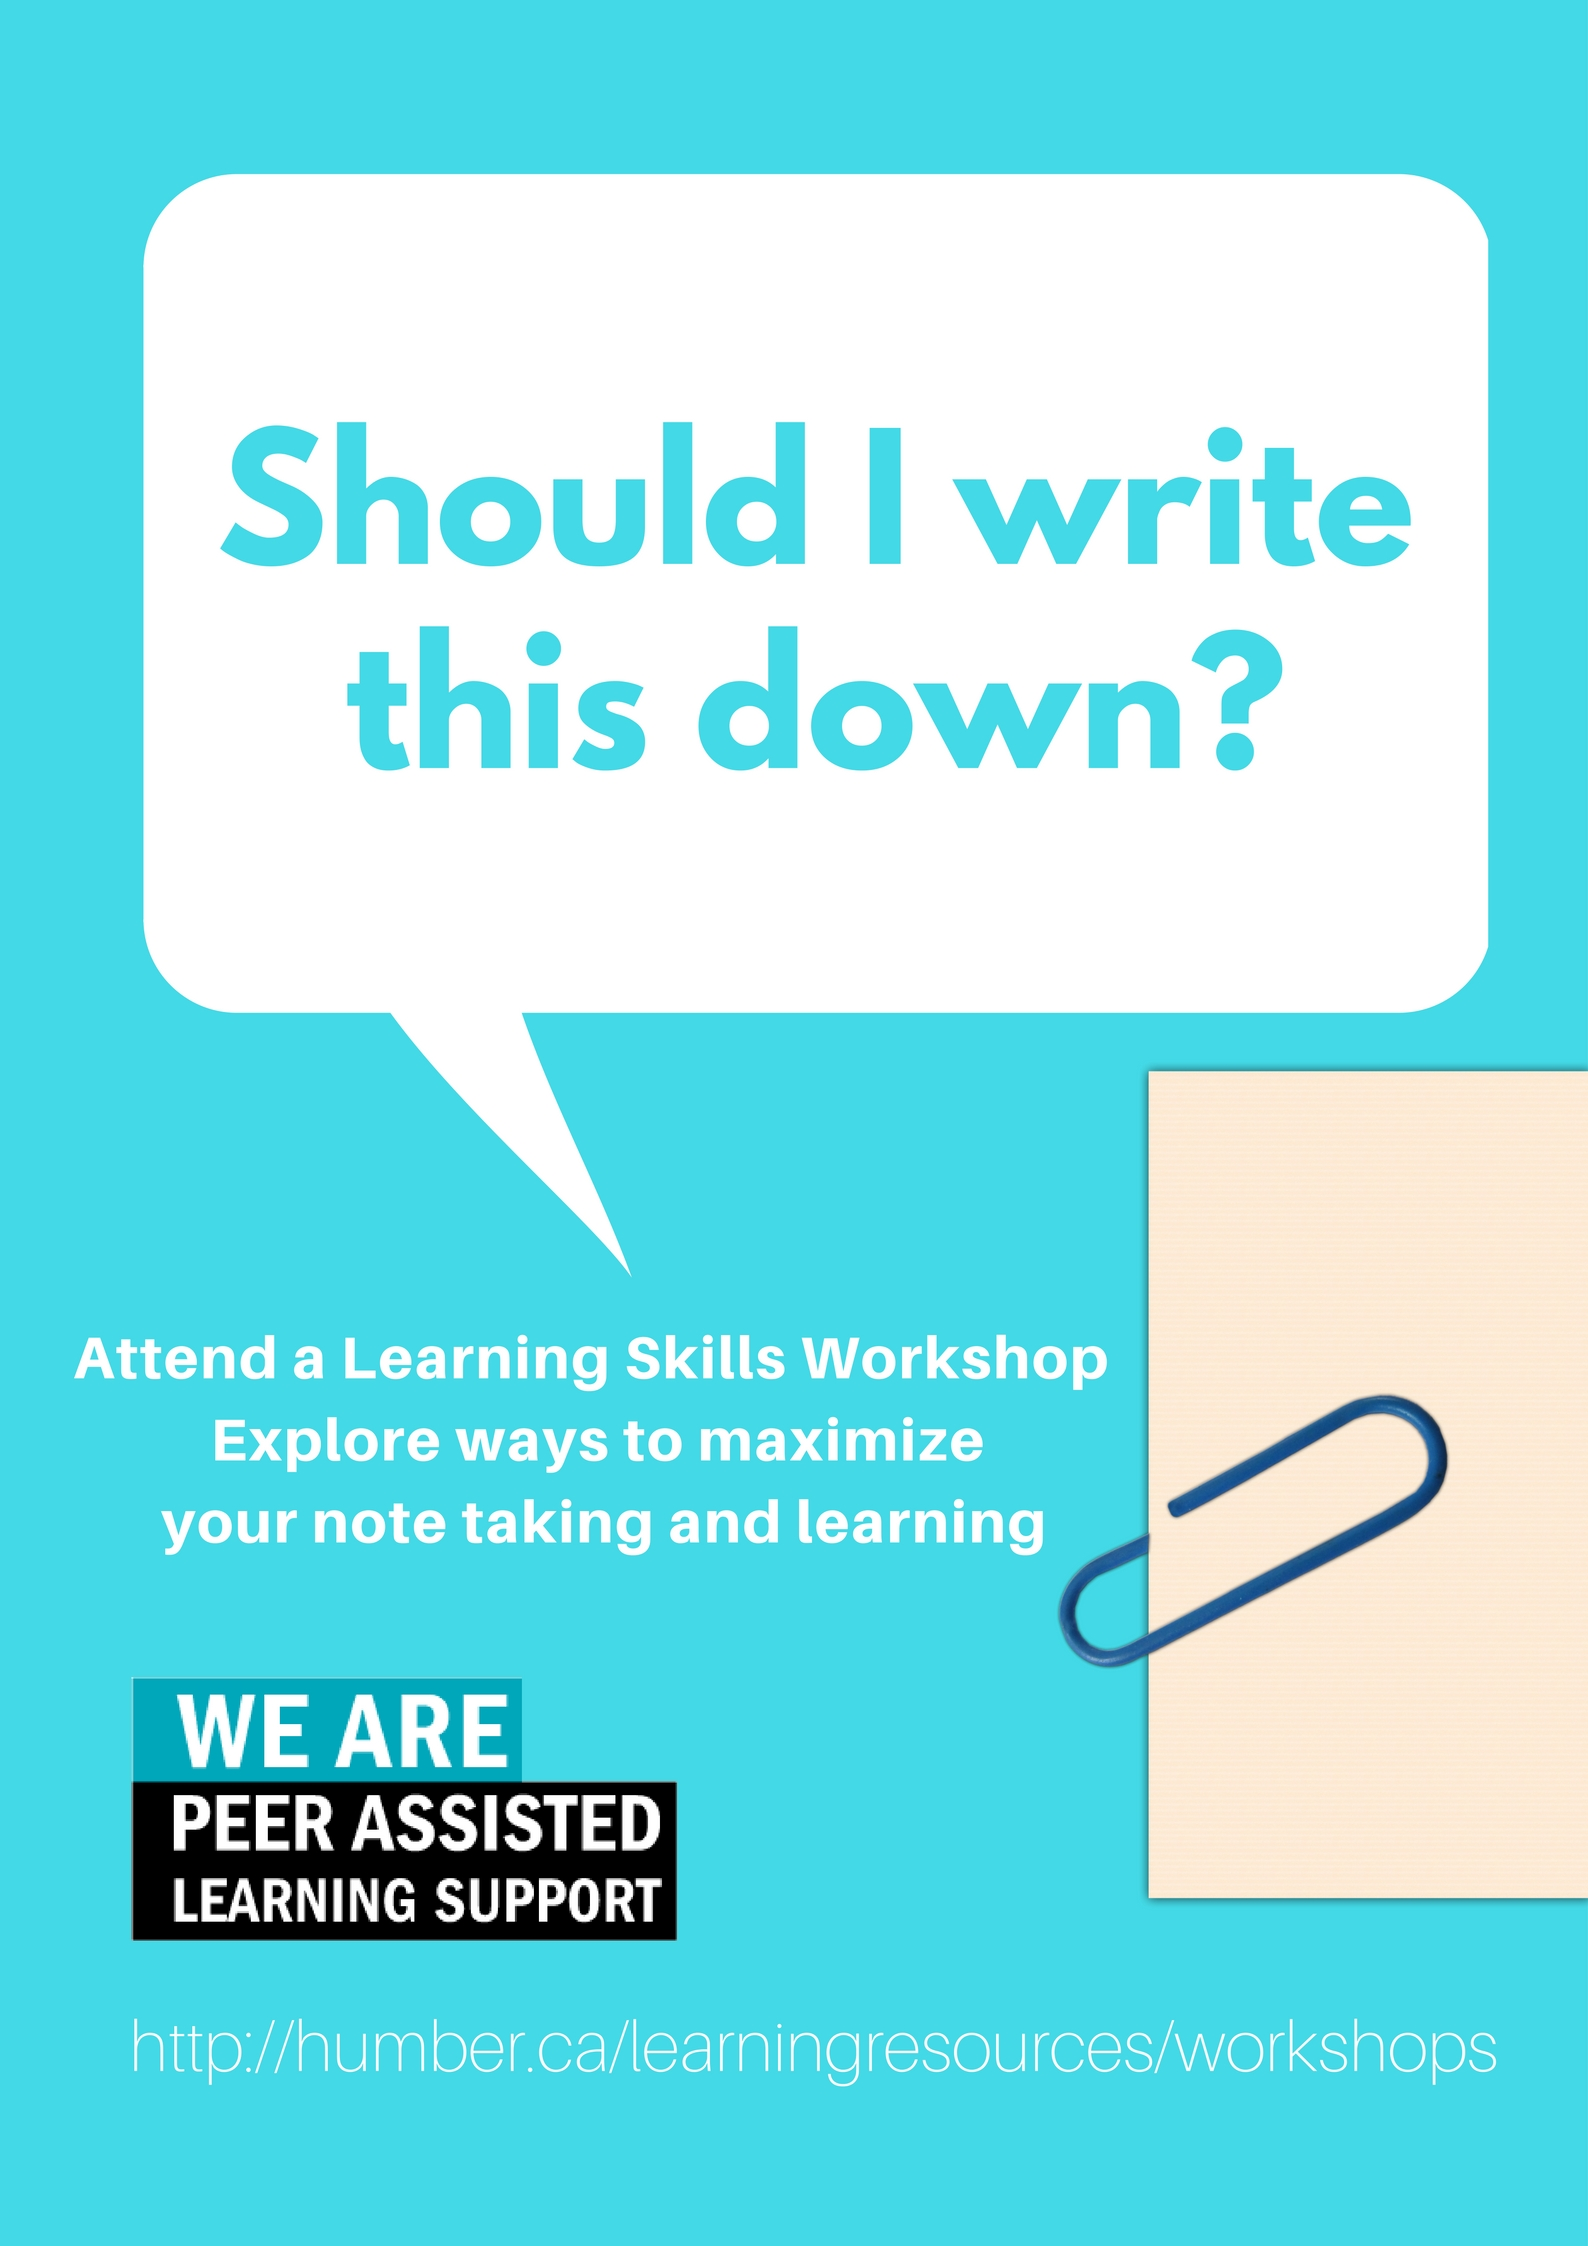 Should I write this down? Attend this workshop to learn about note taking skills